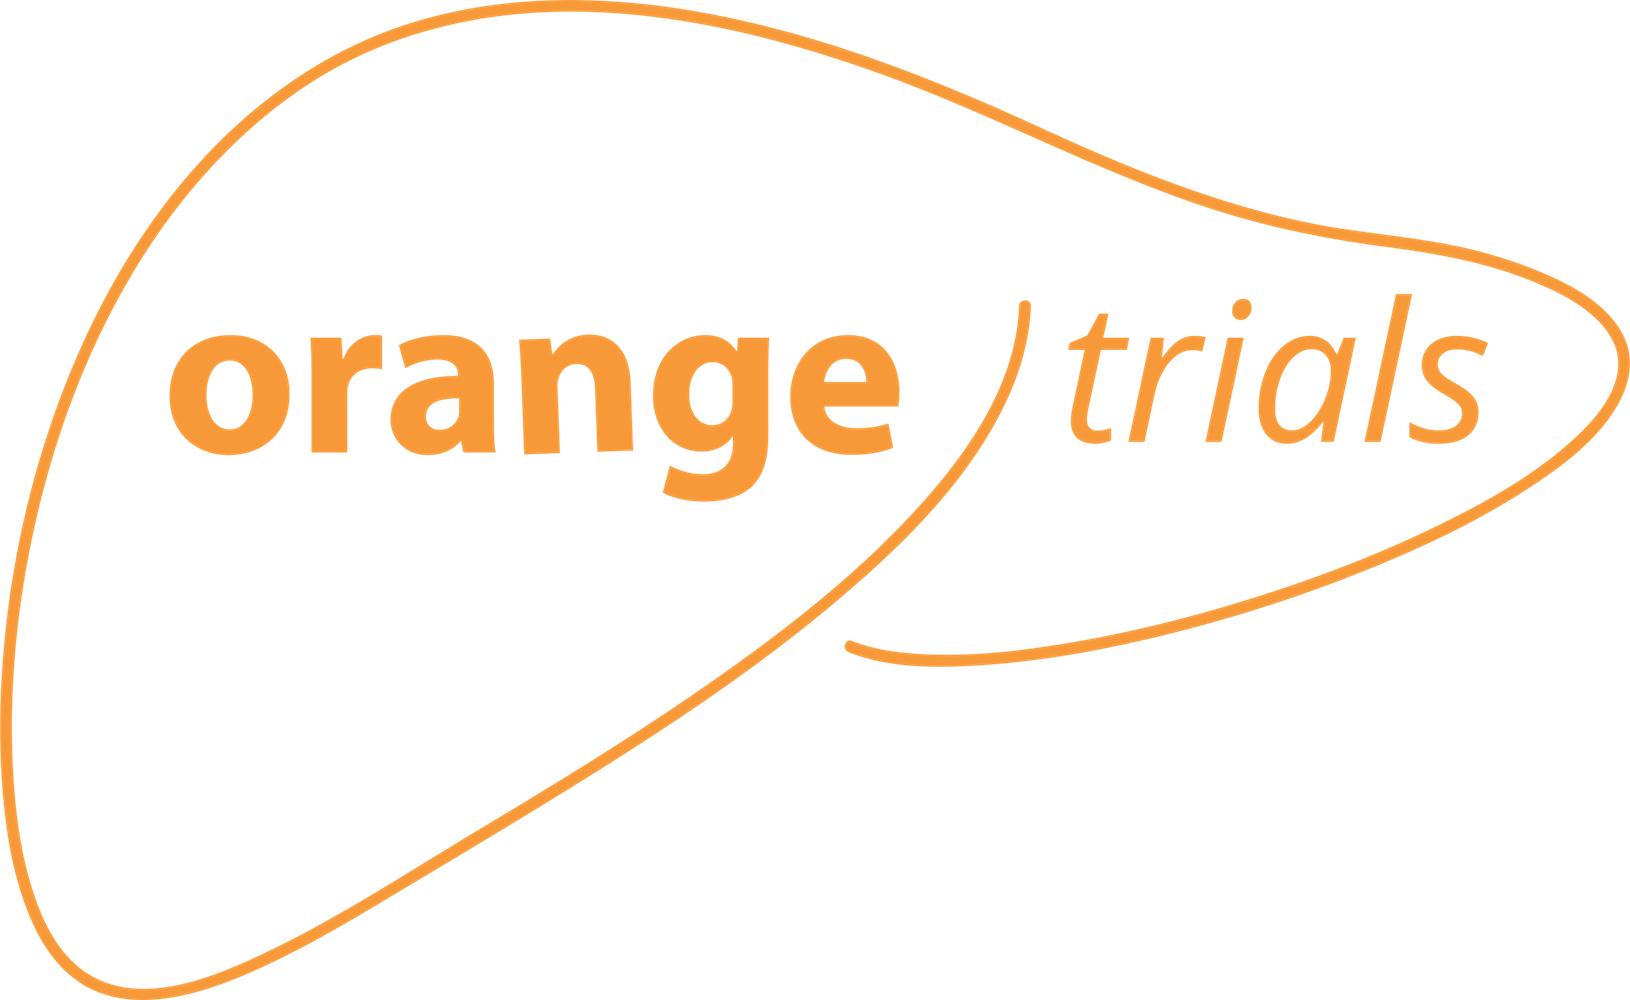 ORANGE TRIALS